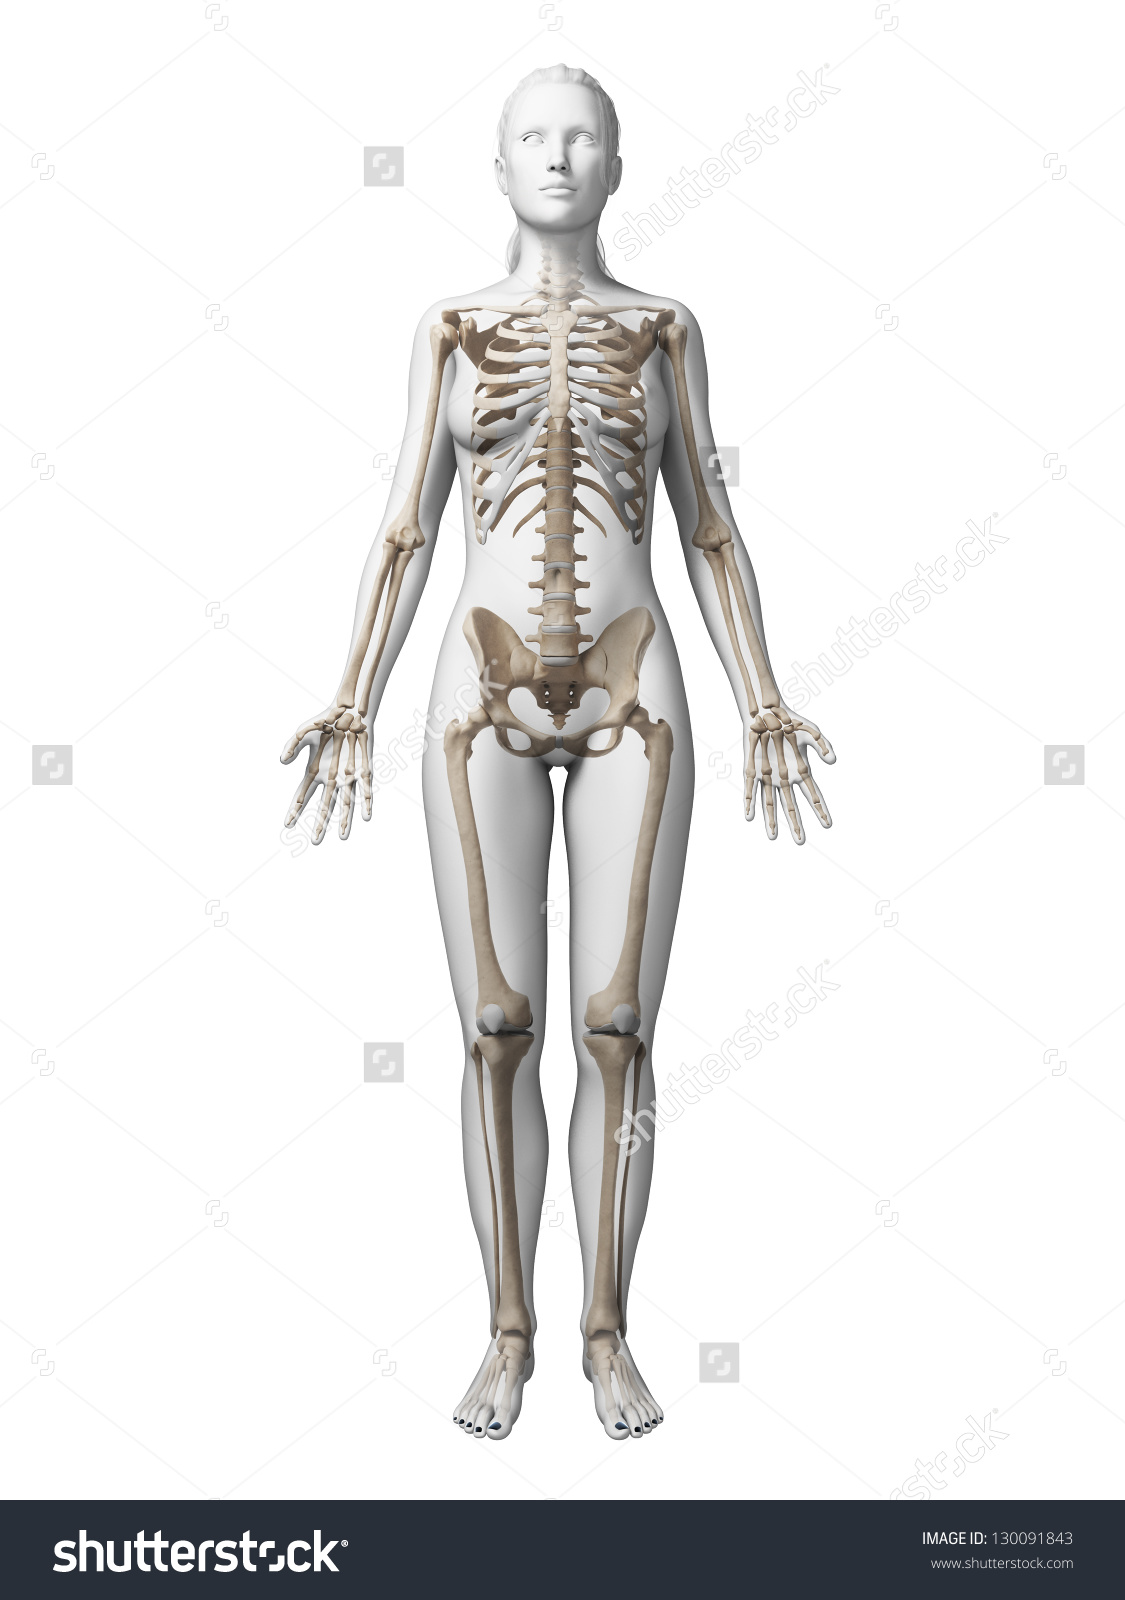 stock-photo--d-rendered-illustration-of-the-female-skeleton-130091843.jpg